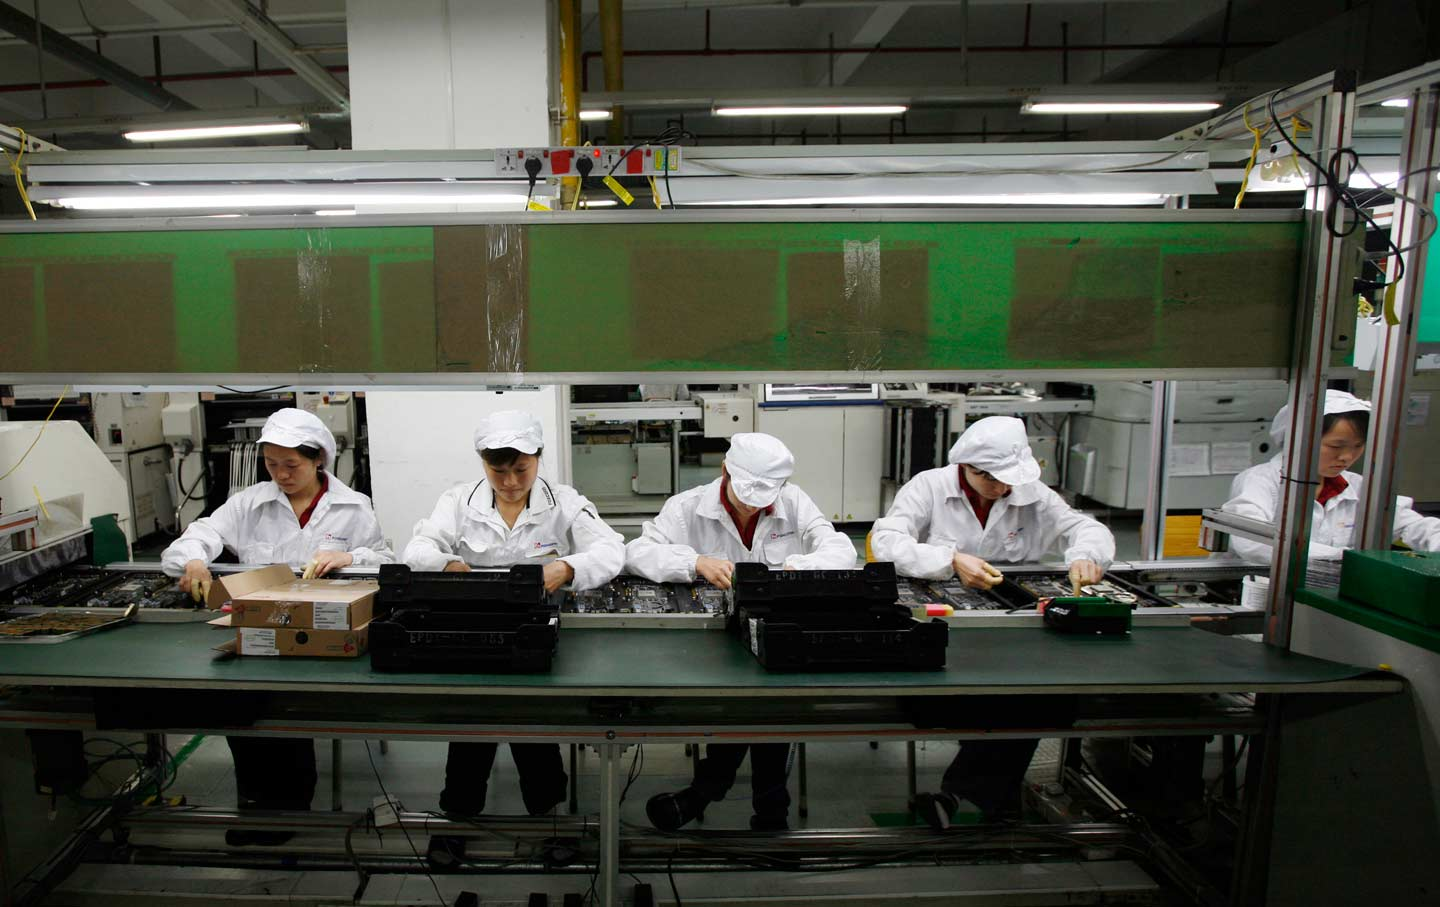 Workers in a Foxconn factory in Guangdong province, China.